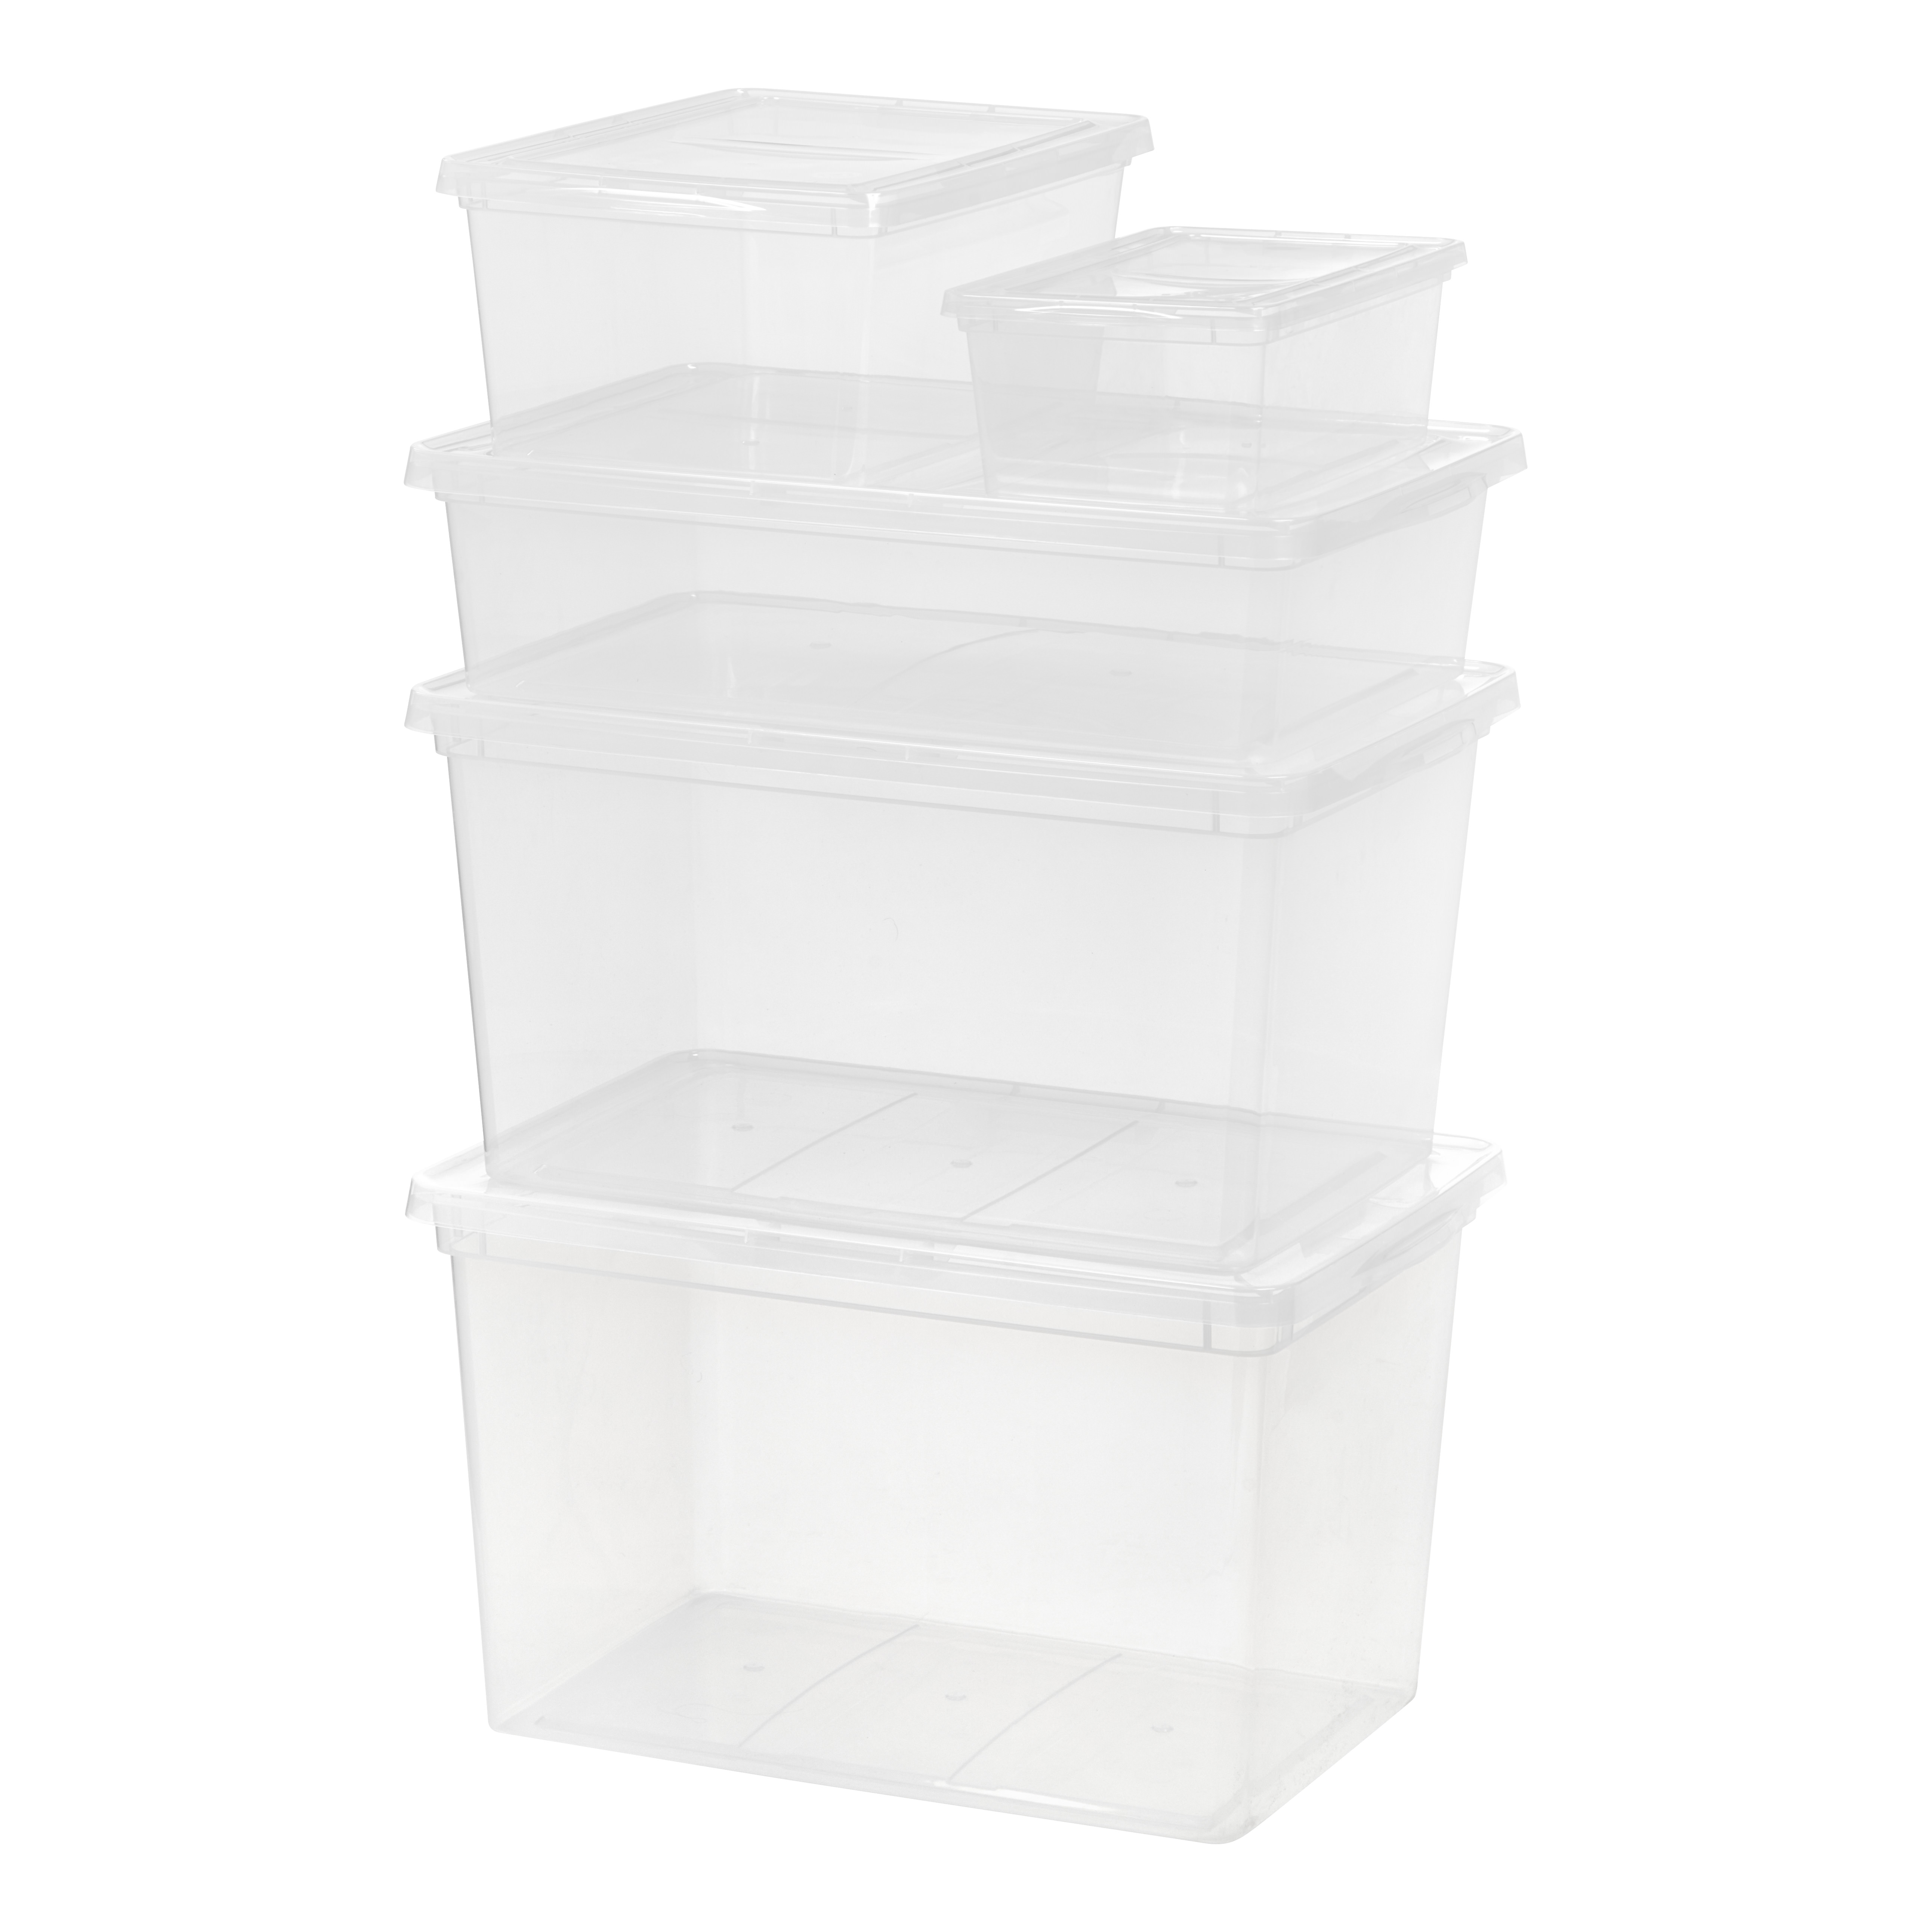 Plastic,Foldable and Stackable Set of 6 PARANTA Clear Shoe Storage Box Medium White for Storage and Display of Men and Women Shoes